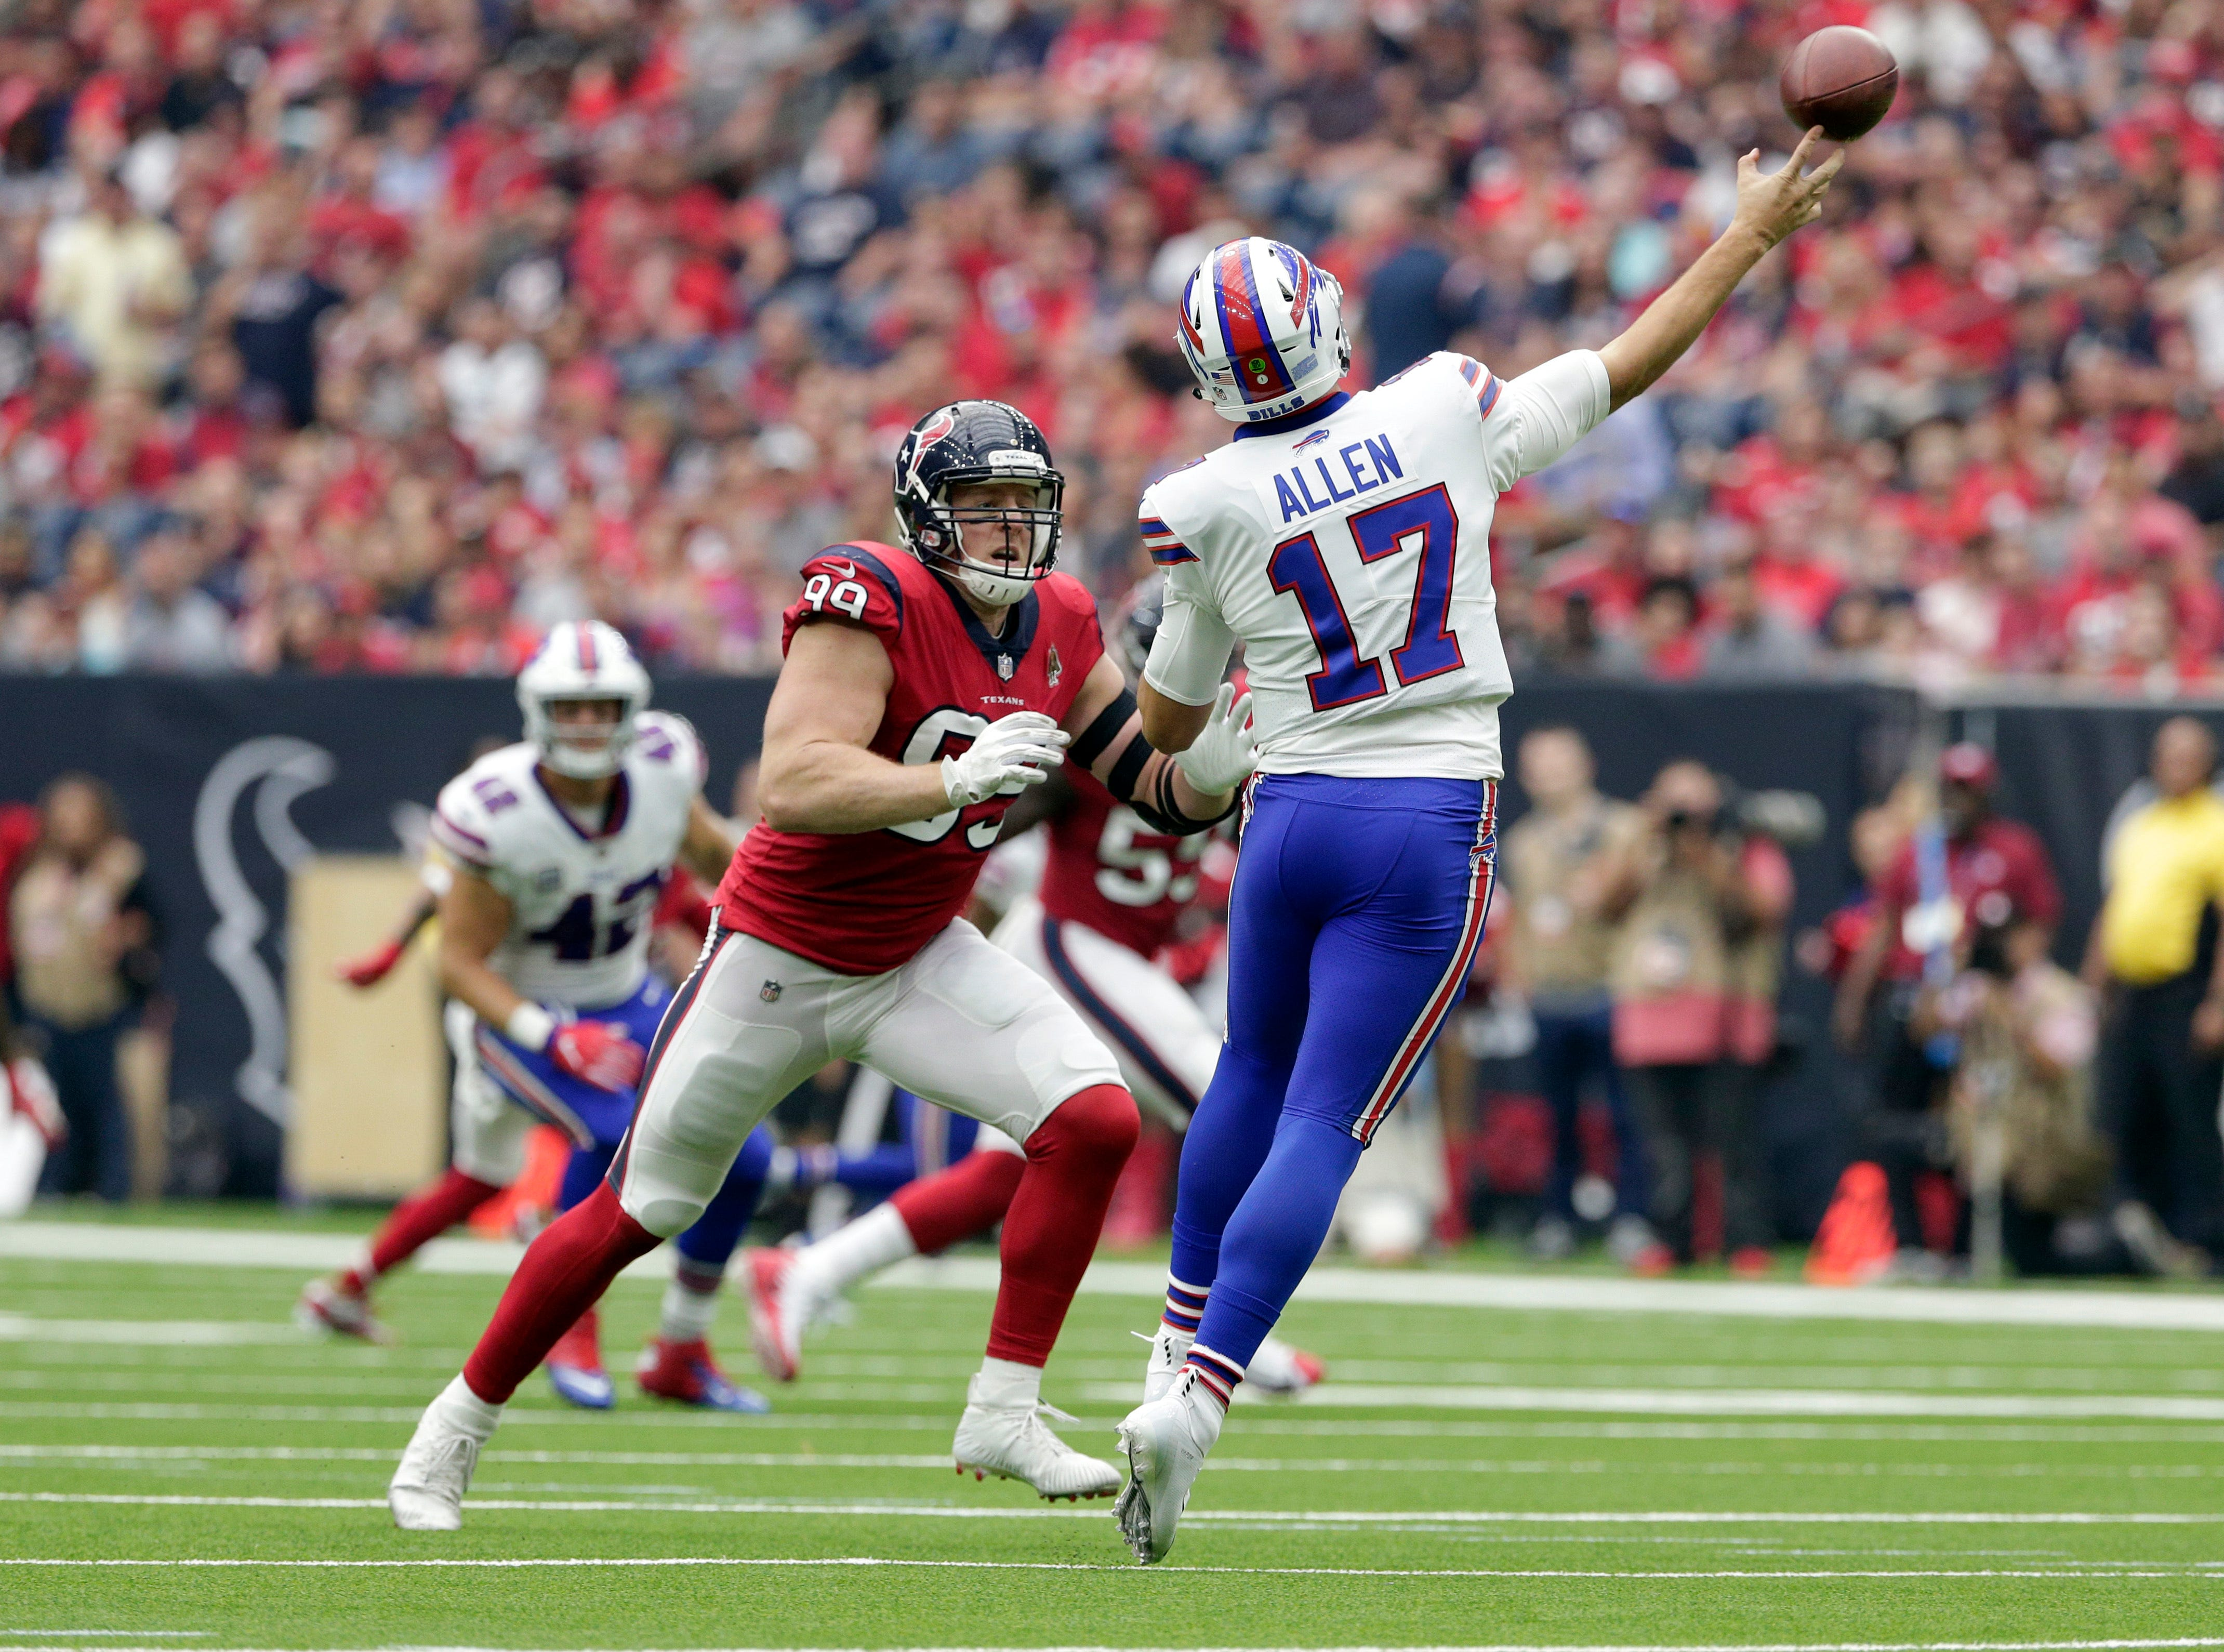 Buffalo Bills quarterback Josh Allen (17) is pressured by Houston Texans defensive end J.J. Watt (99) as he throws during the first quarter of an NFL football game, Sunday, Oct. 14, 2018, in Houston. (AP Photo/Michael Wyke)